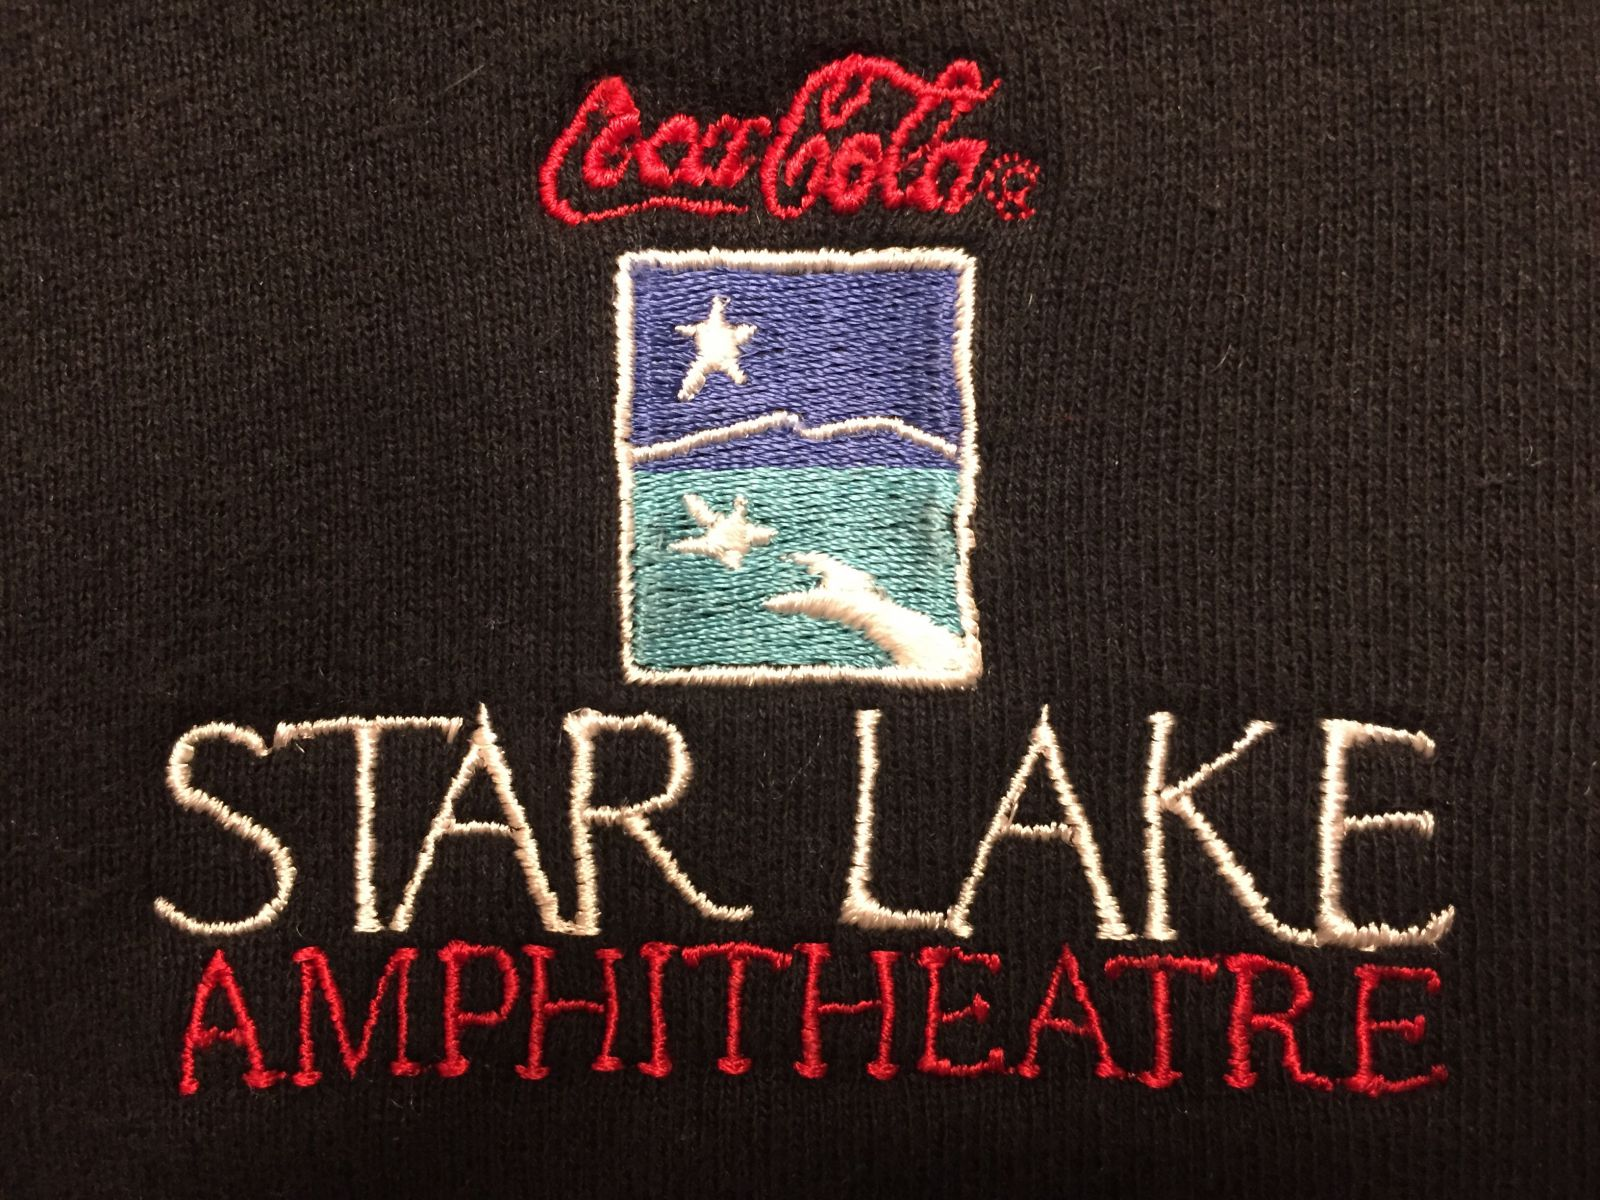 972cf806d If we had done a pretty wide poll of concertgoers back in the 1990s about  Star Lake Amphitheater—which of course then name-morphed over the years to  ...